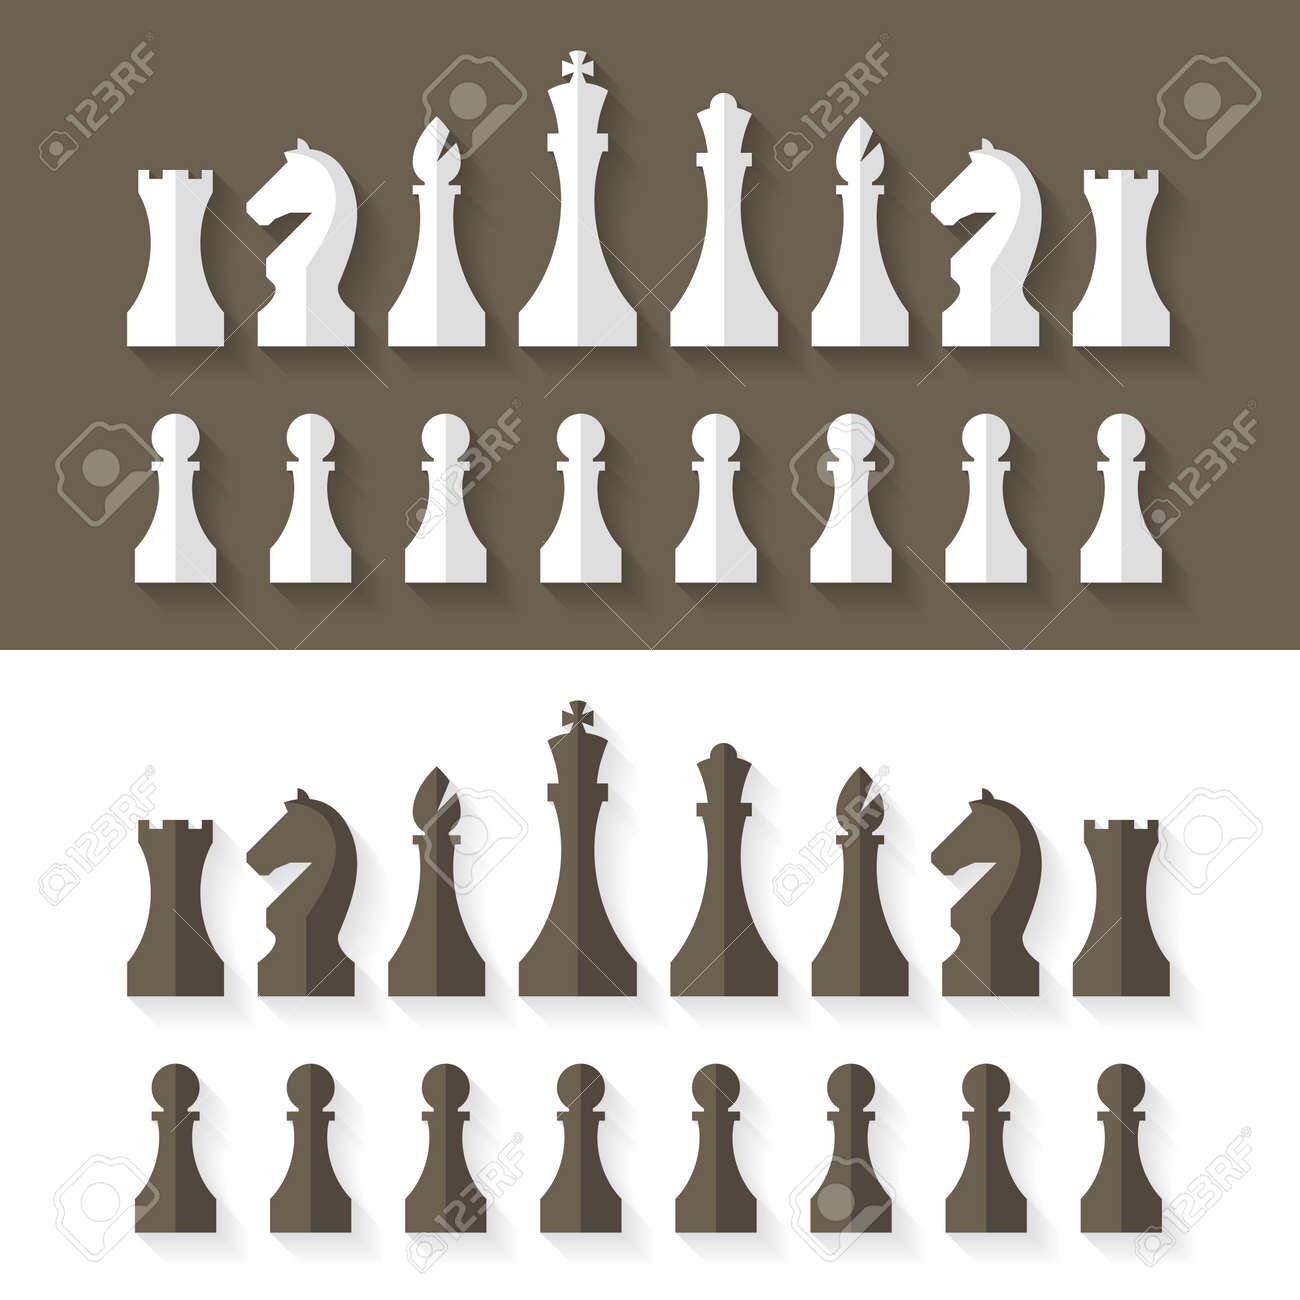 chess pieces flat design style royalty free cliparts vectors and